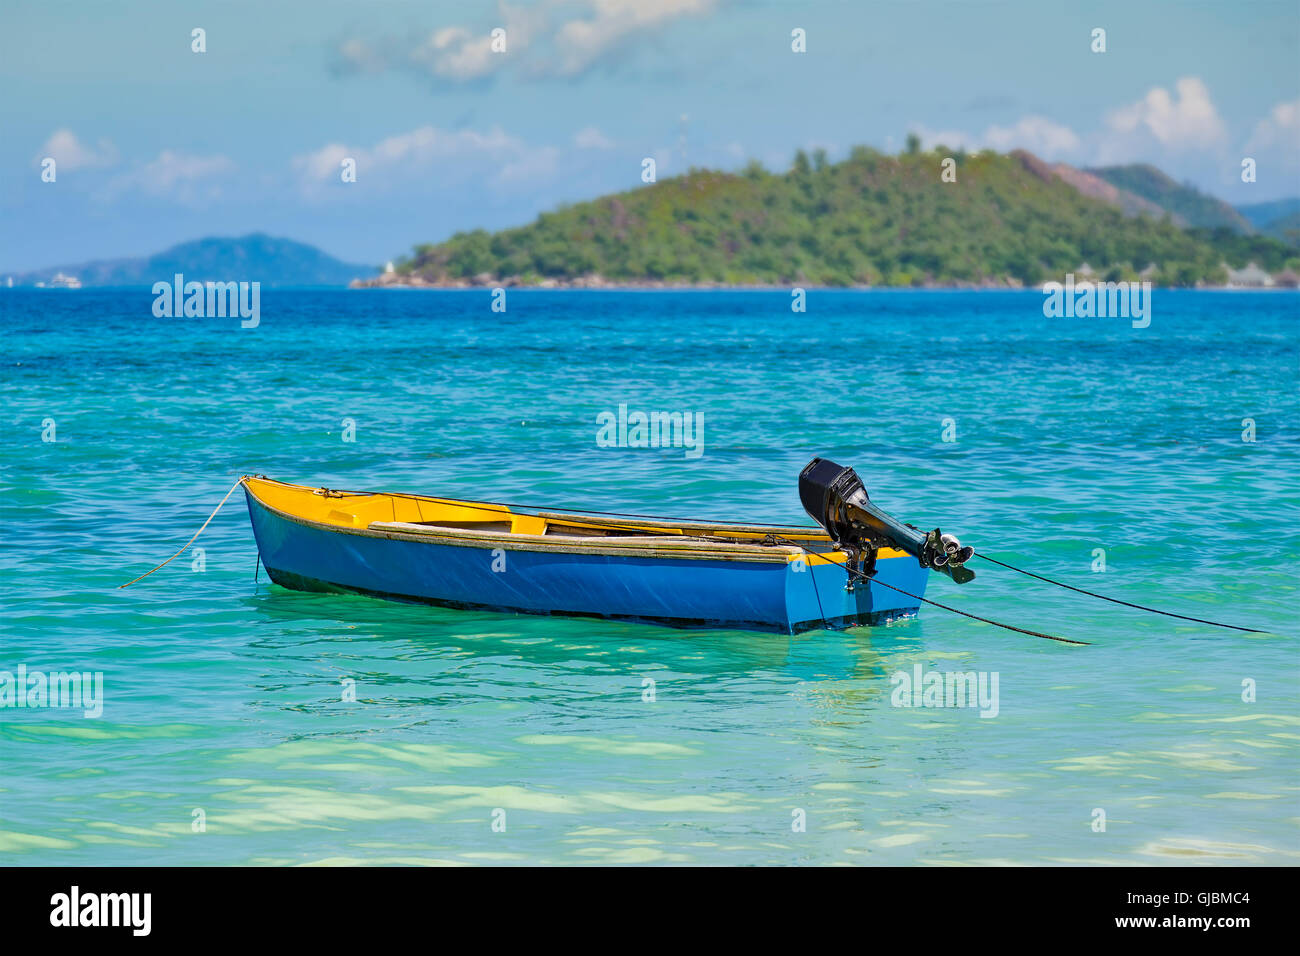 Colorful small blue fishing boat with outboard motor for Small fishing boats with motor